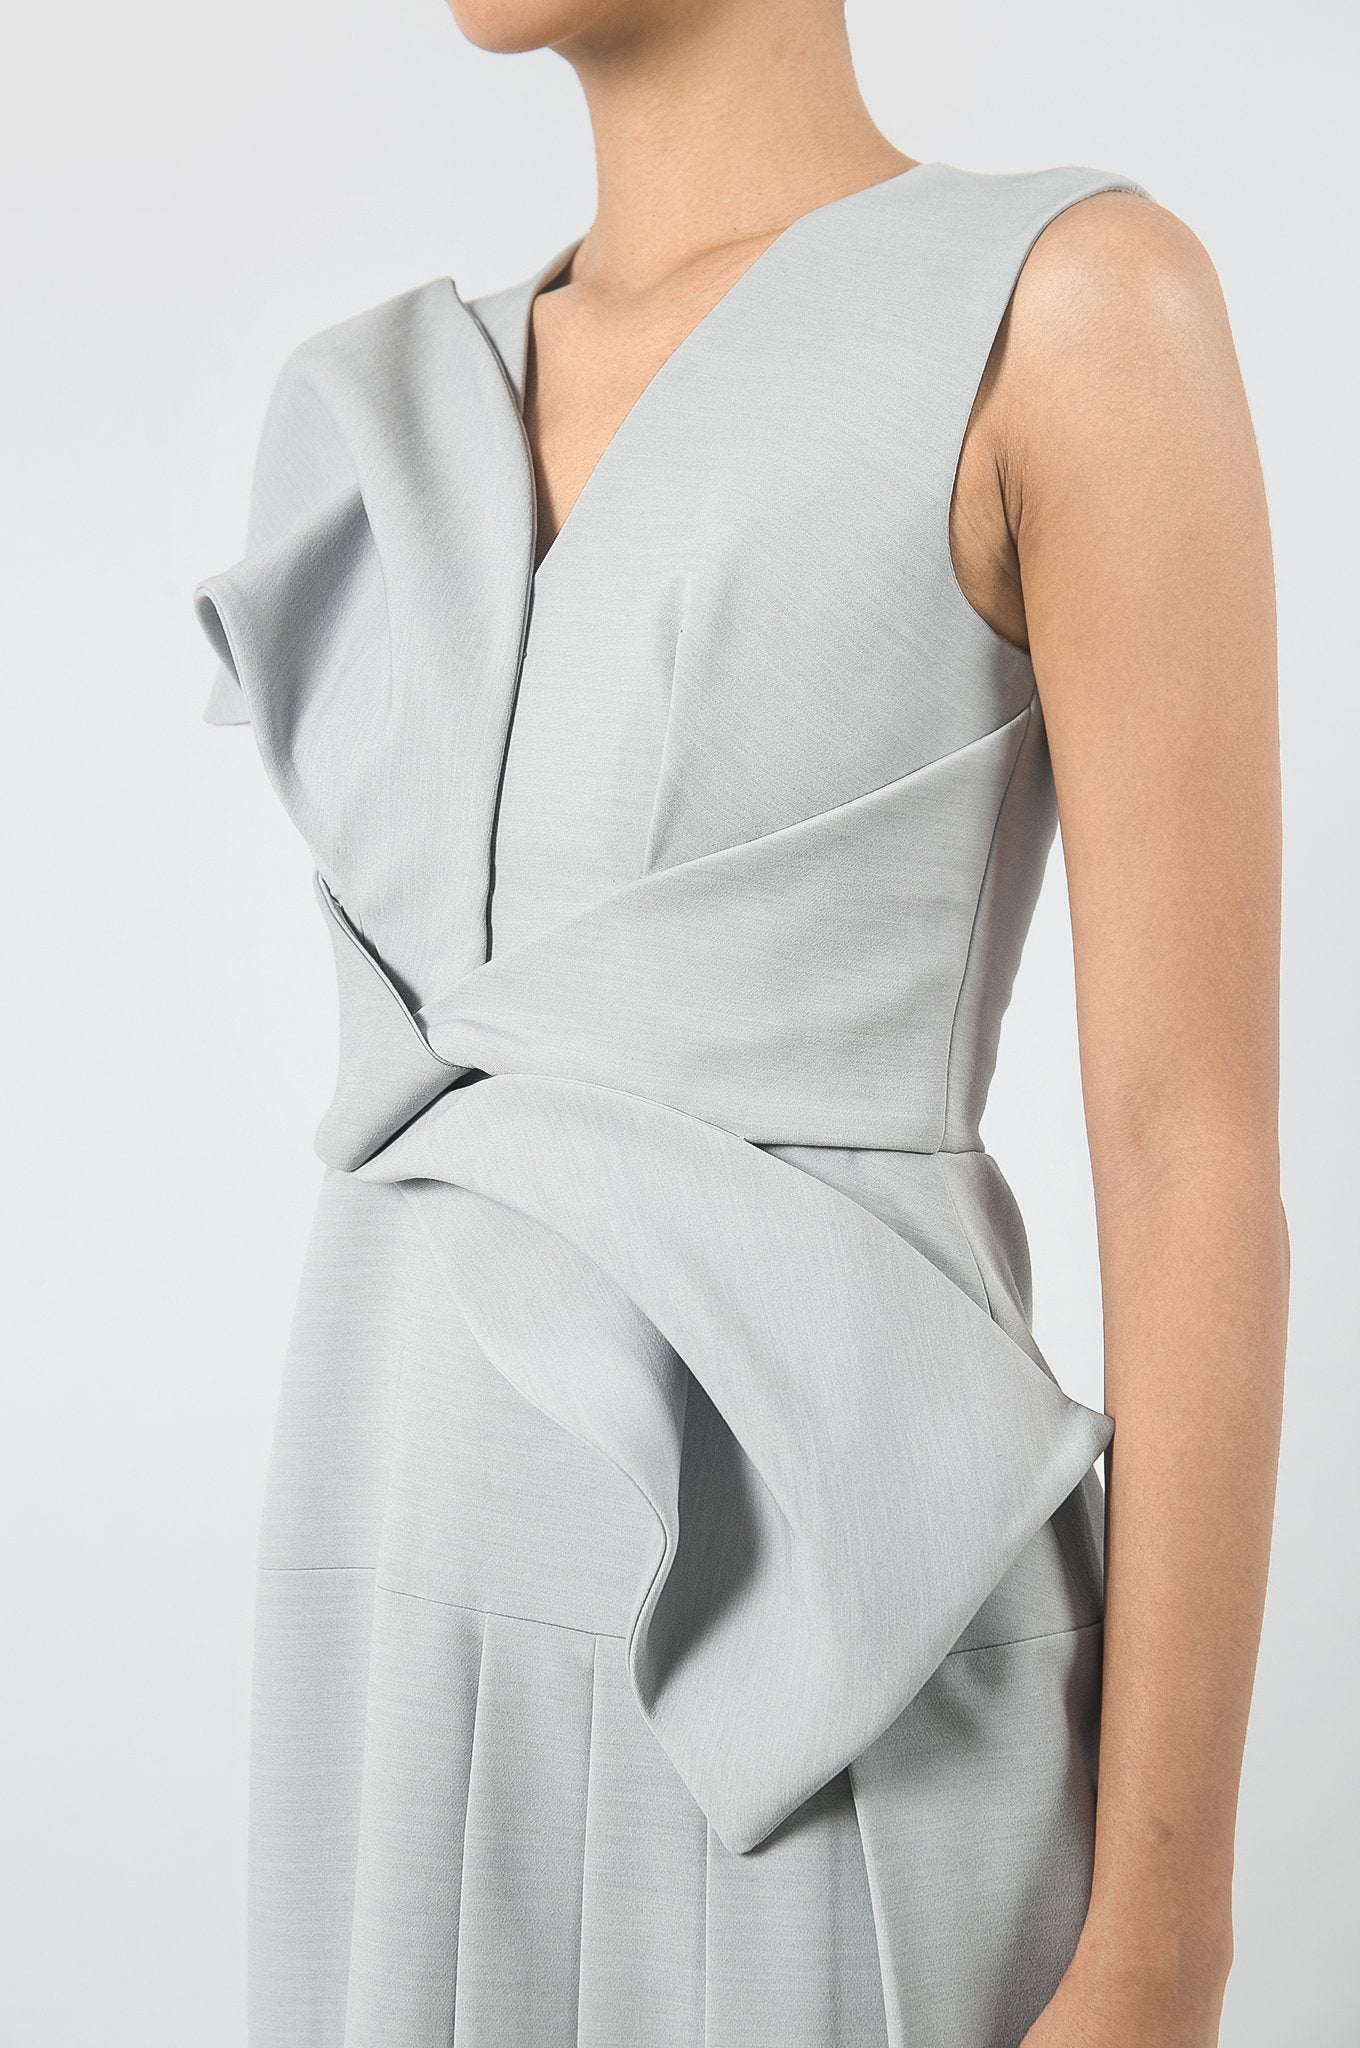 Grey Artifact Dress